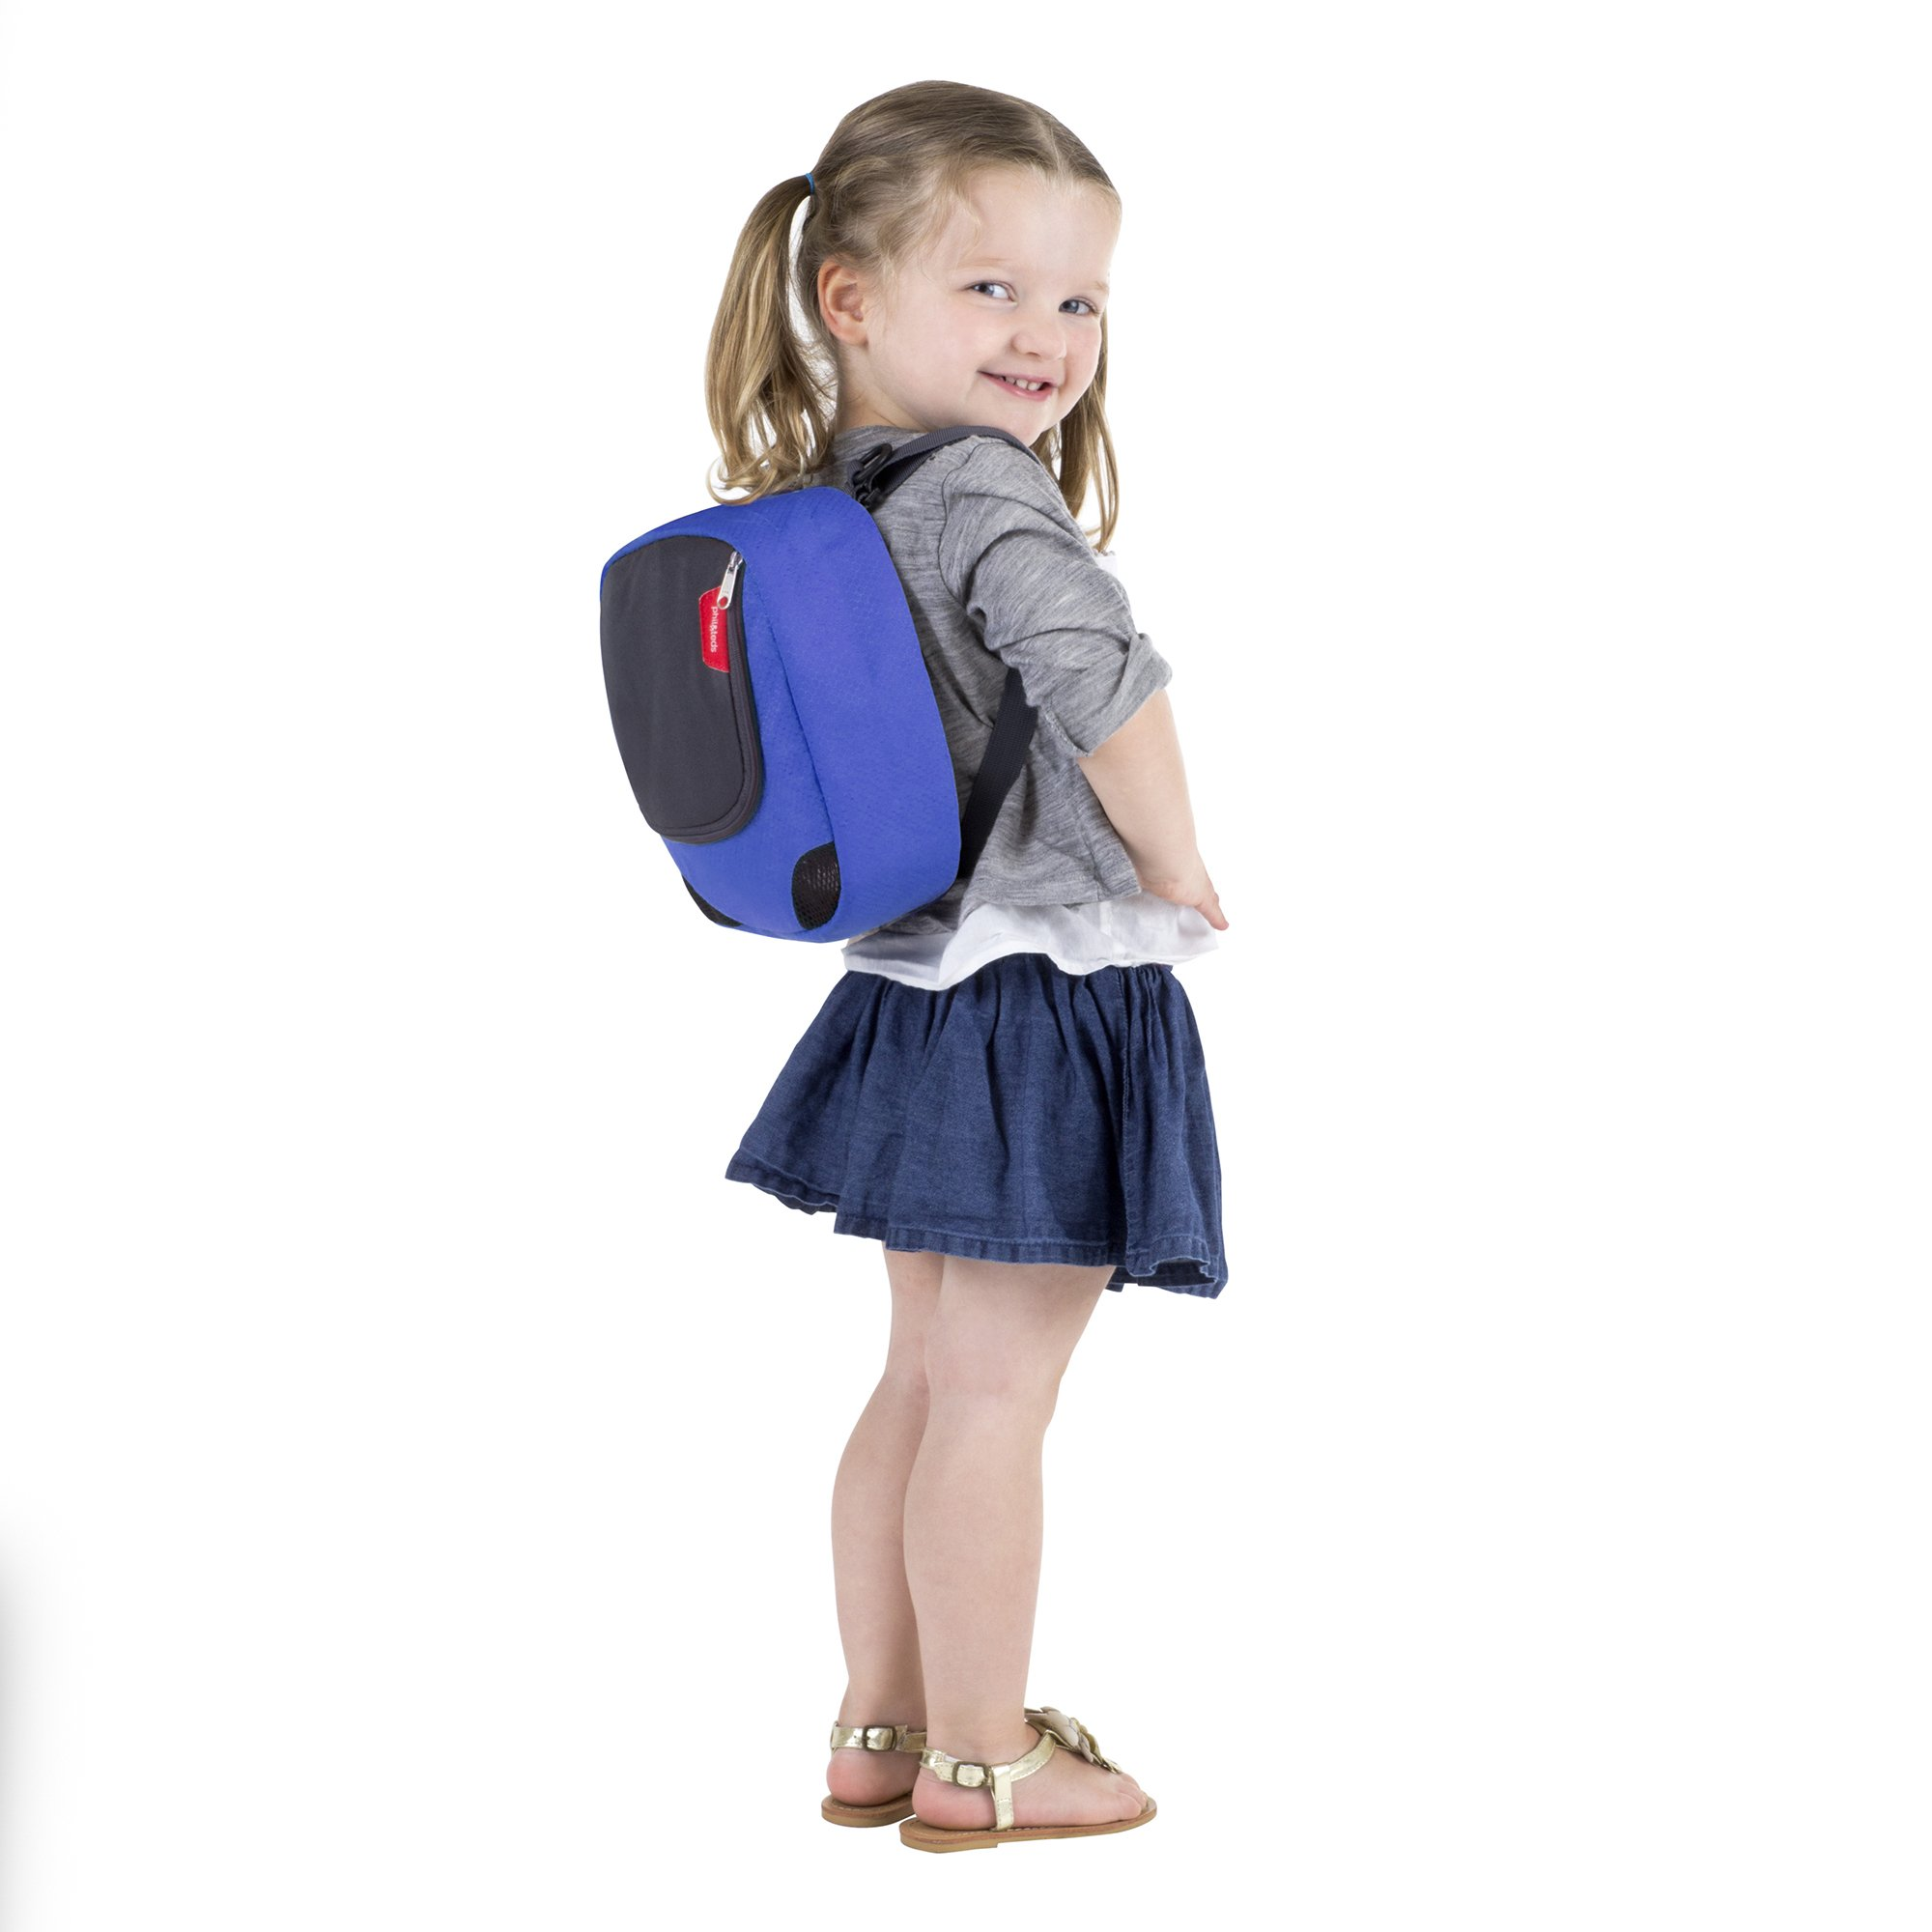 phil&teds Parade Lightweight Backpack Carrier, Blue/Grey by phil&teds (Image #6)